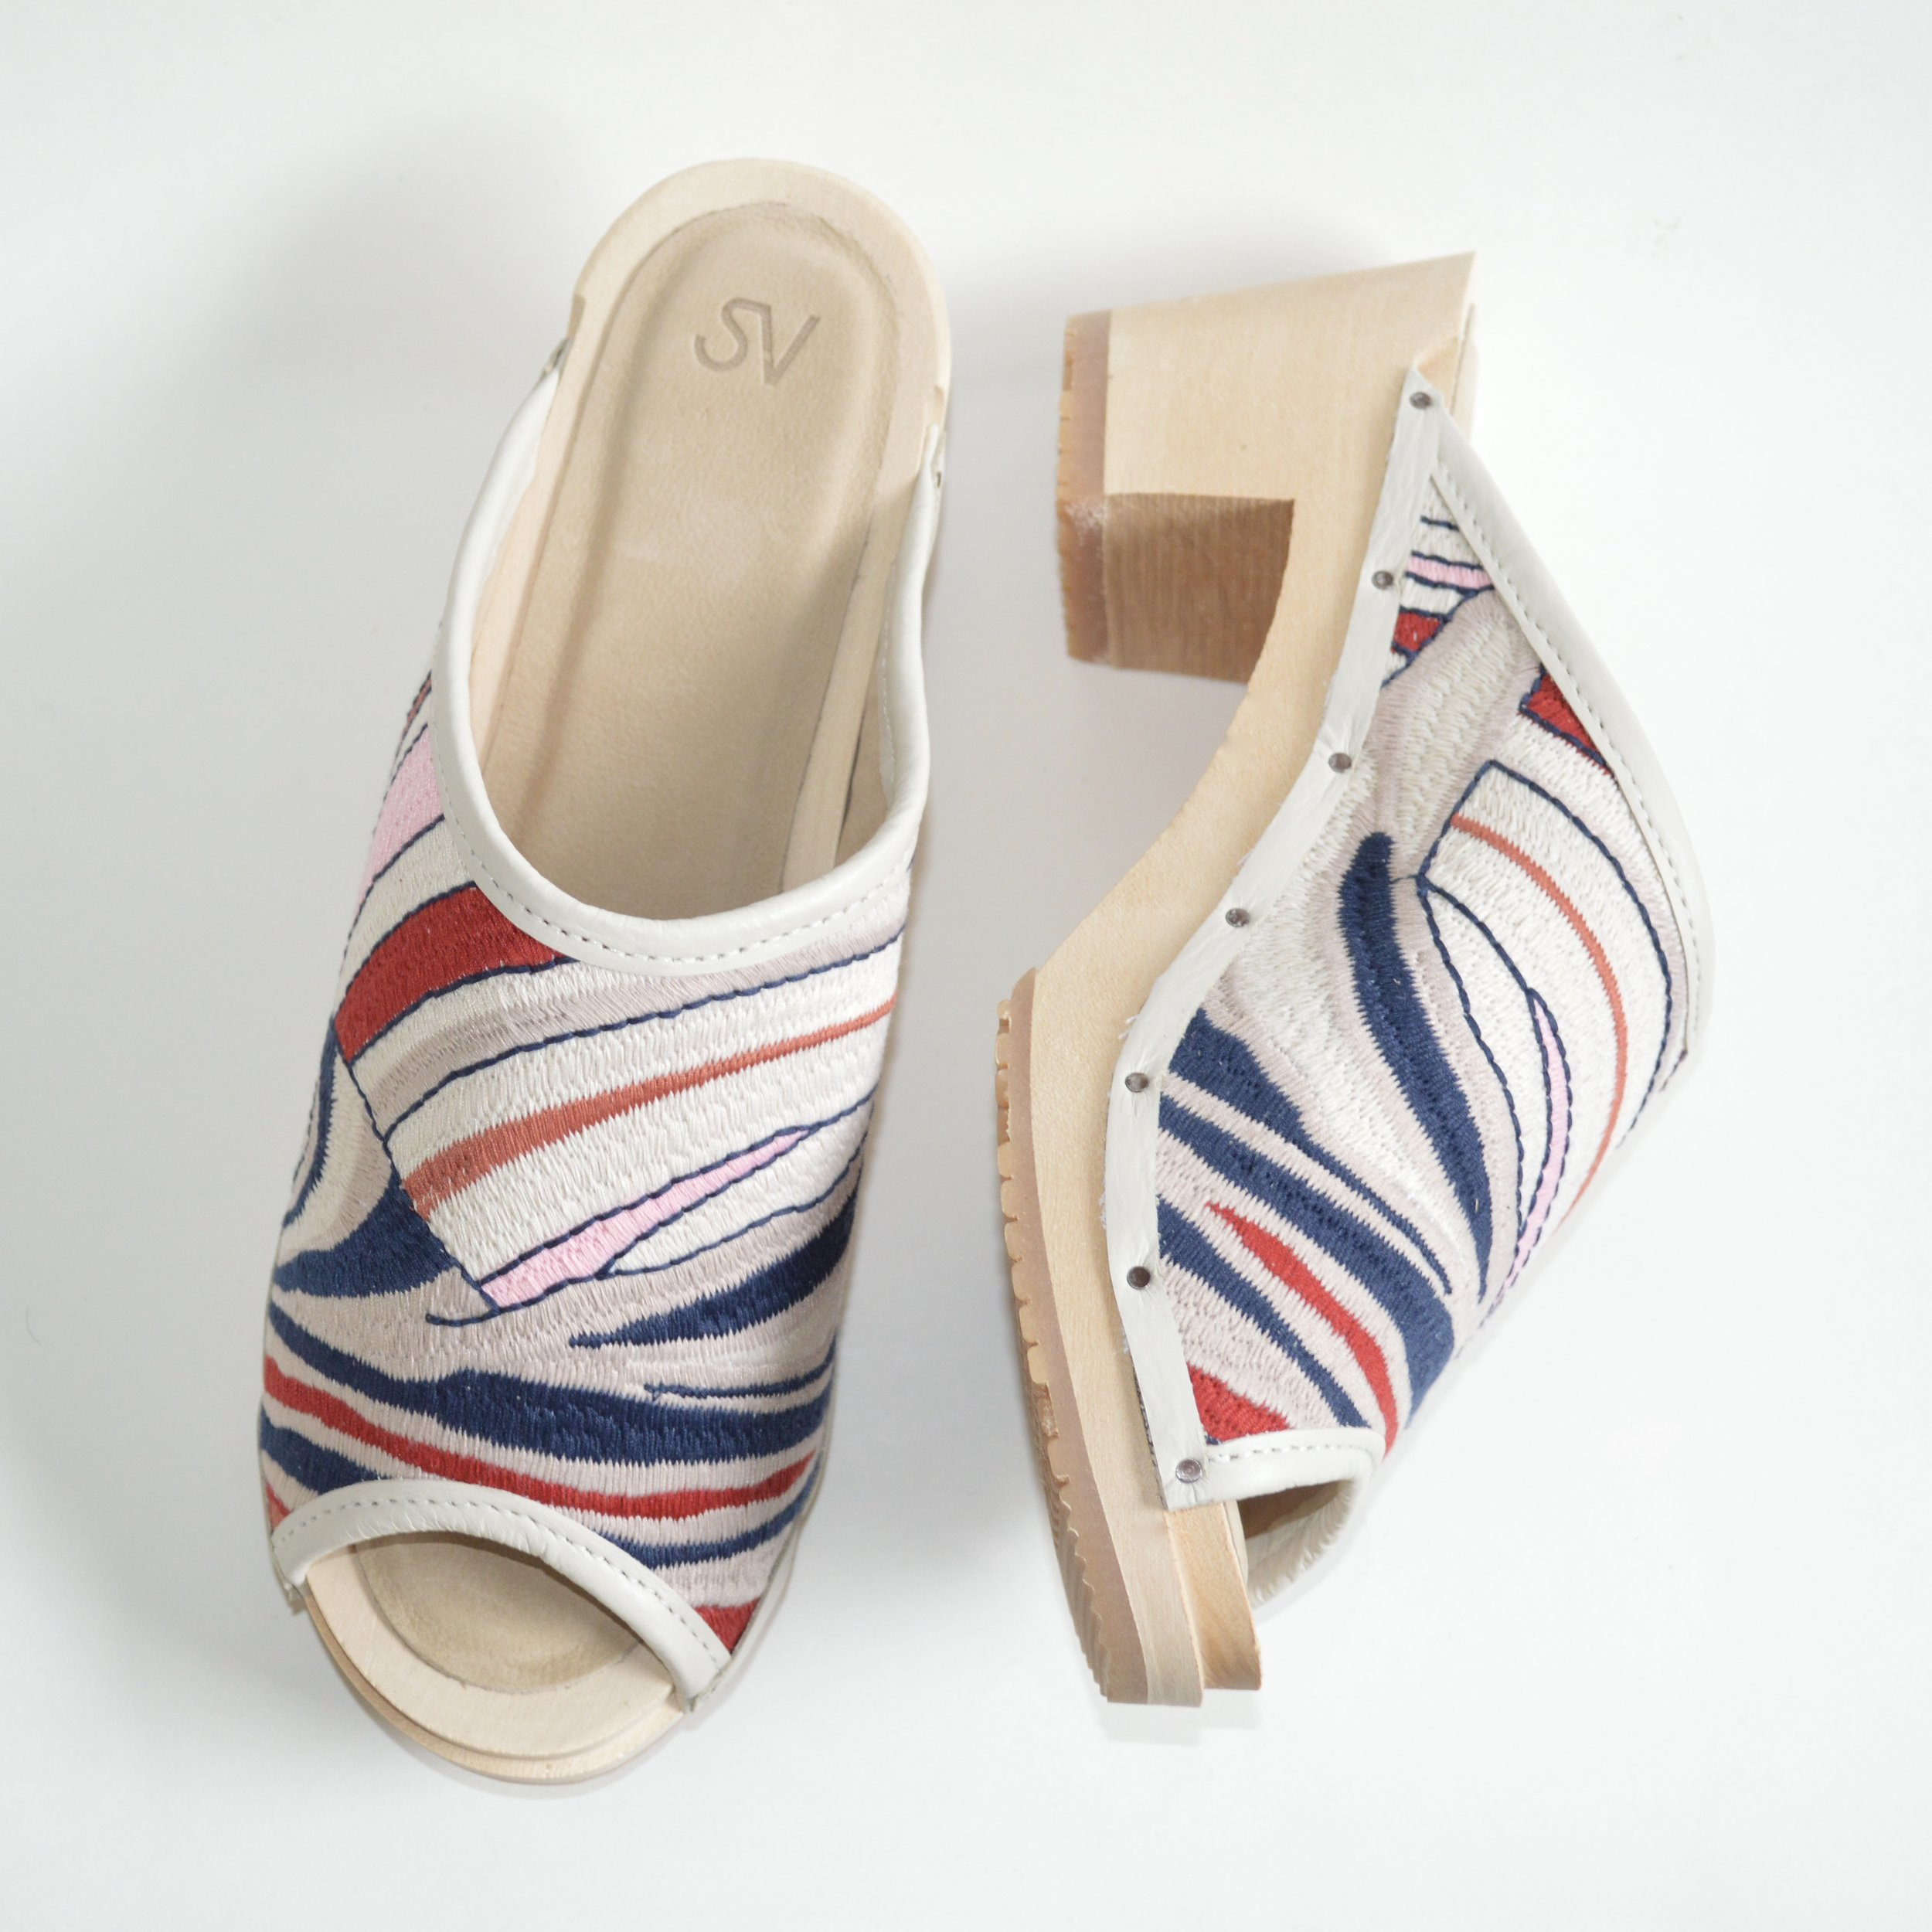 Shop This story - Moon Shannon Clog